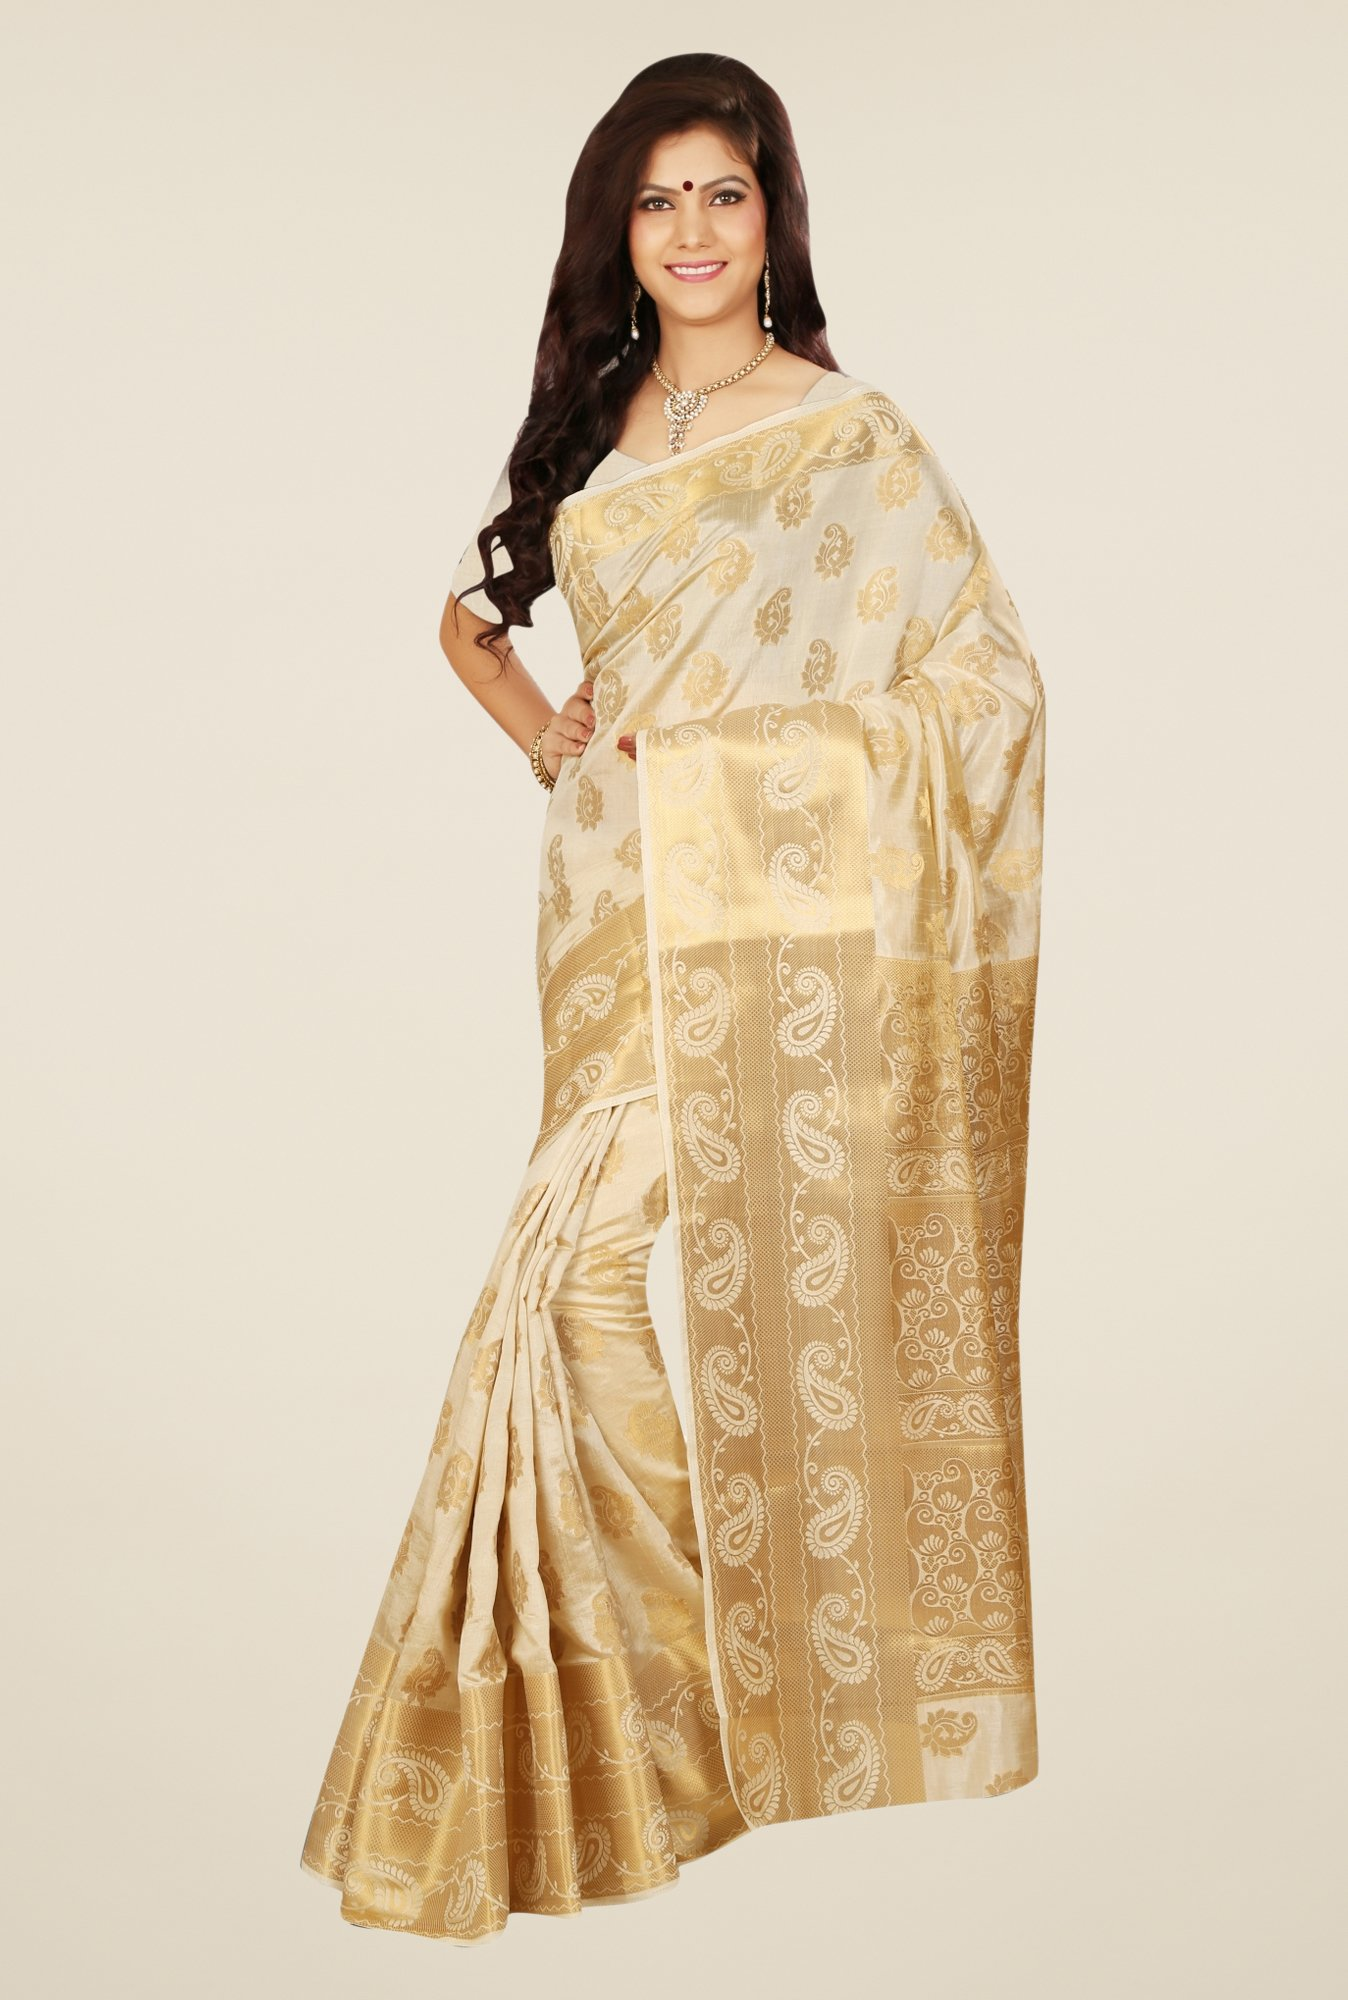 Triveni Charming Cream Tussar Silk Saree